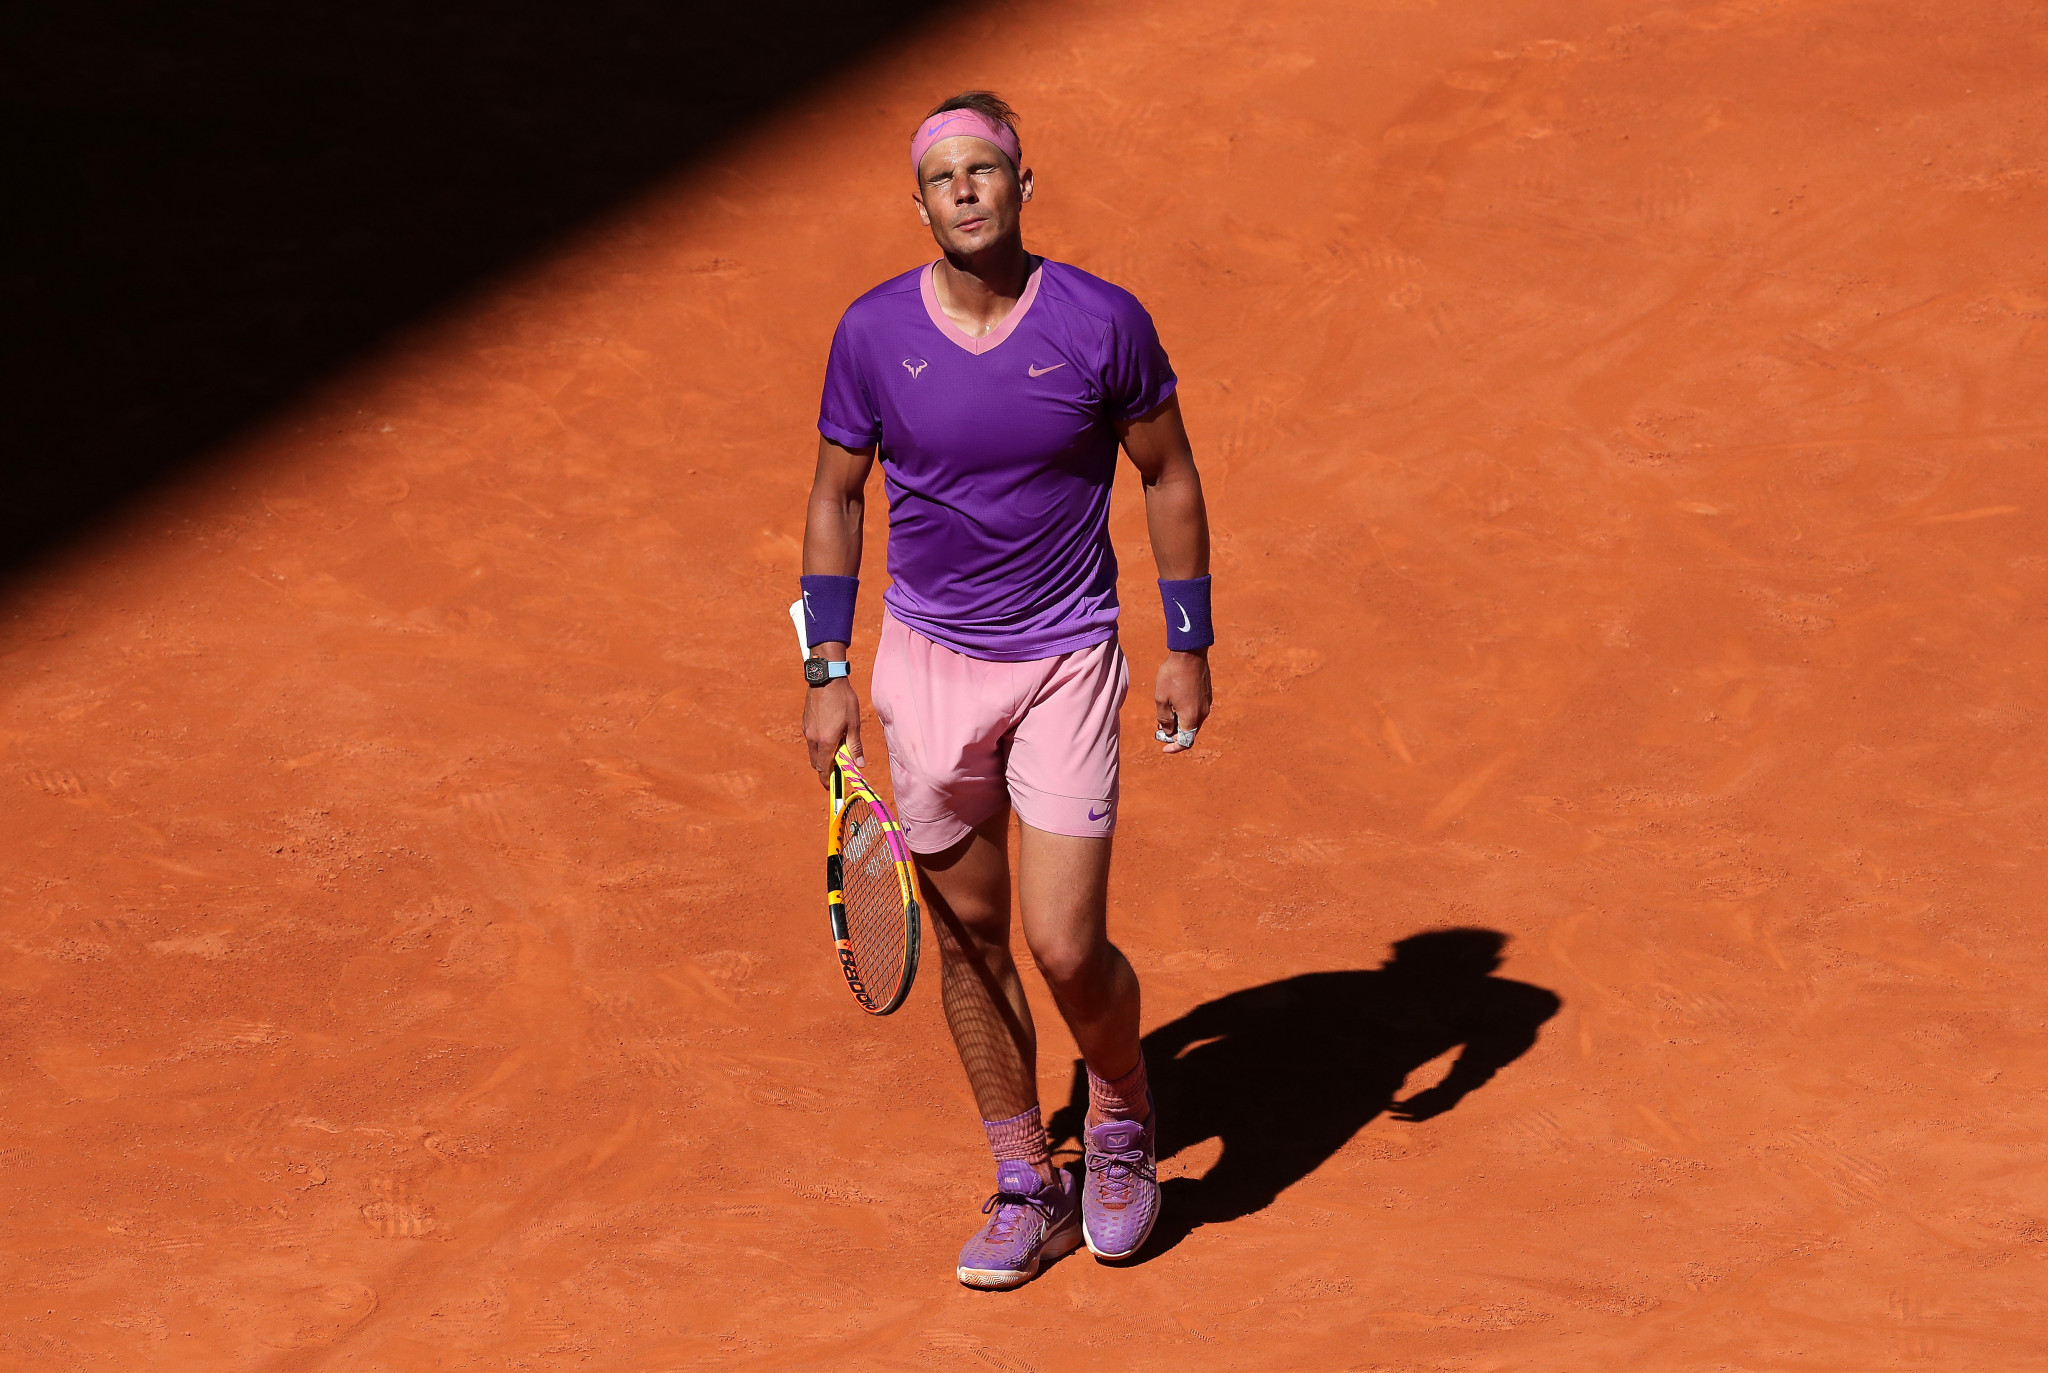 Men's top seed Nadal suffers surprise quarter-final exit at Madrid Open